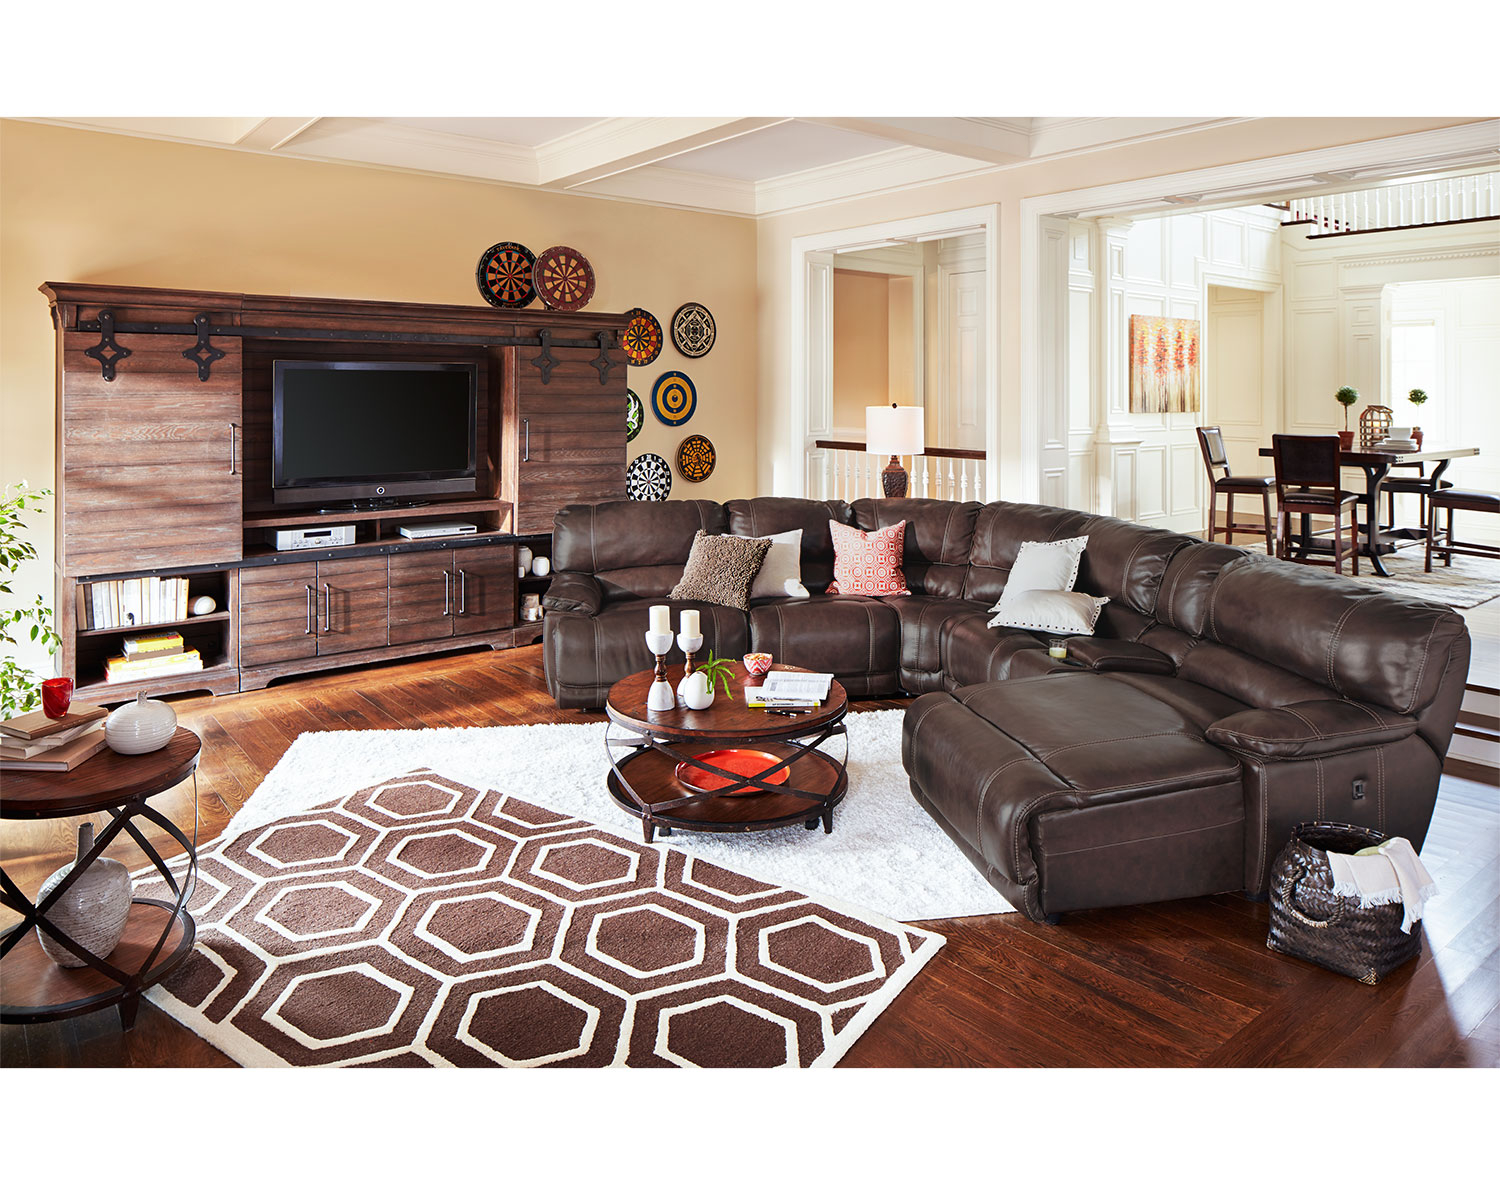 Leather Living Room Sets Home Decor Ideas Editorial Ink intended for Best Living Room Sets